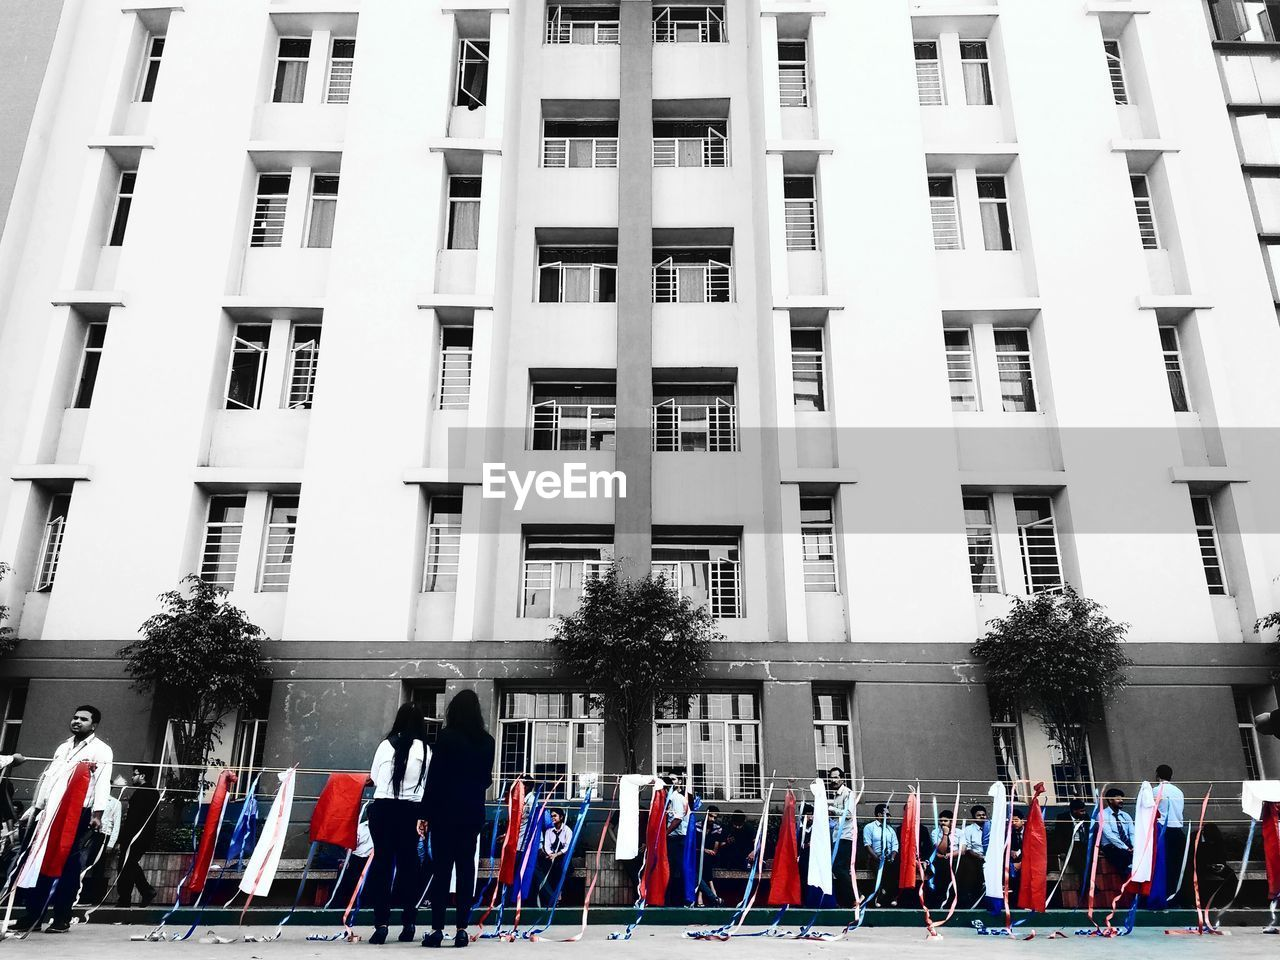 building exterior, real people, built structure, architecture, patriotism, men, large group of people, uniform, parade, flag, pride, day, marching, city, military uniform, outdoors, unity, military parade, togetherness, tree, politics and government, adult, people